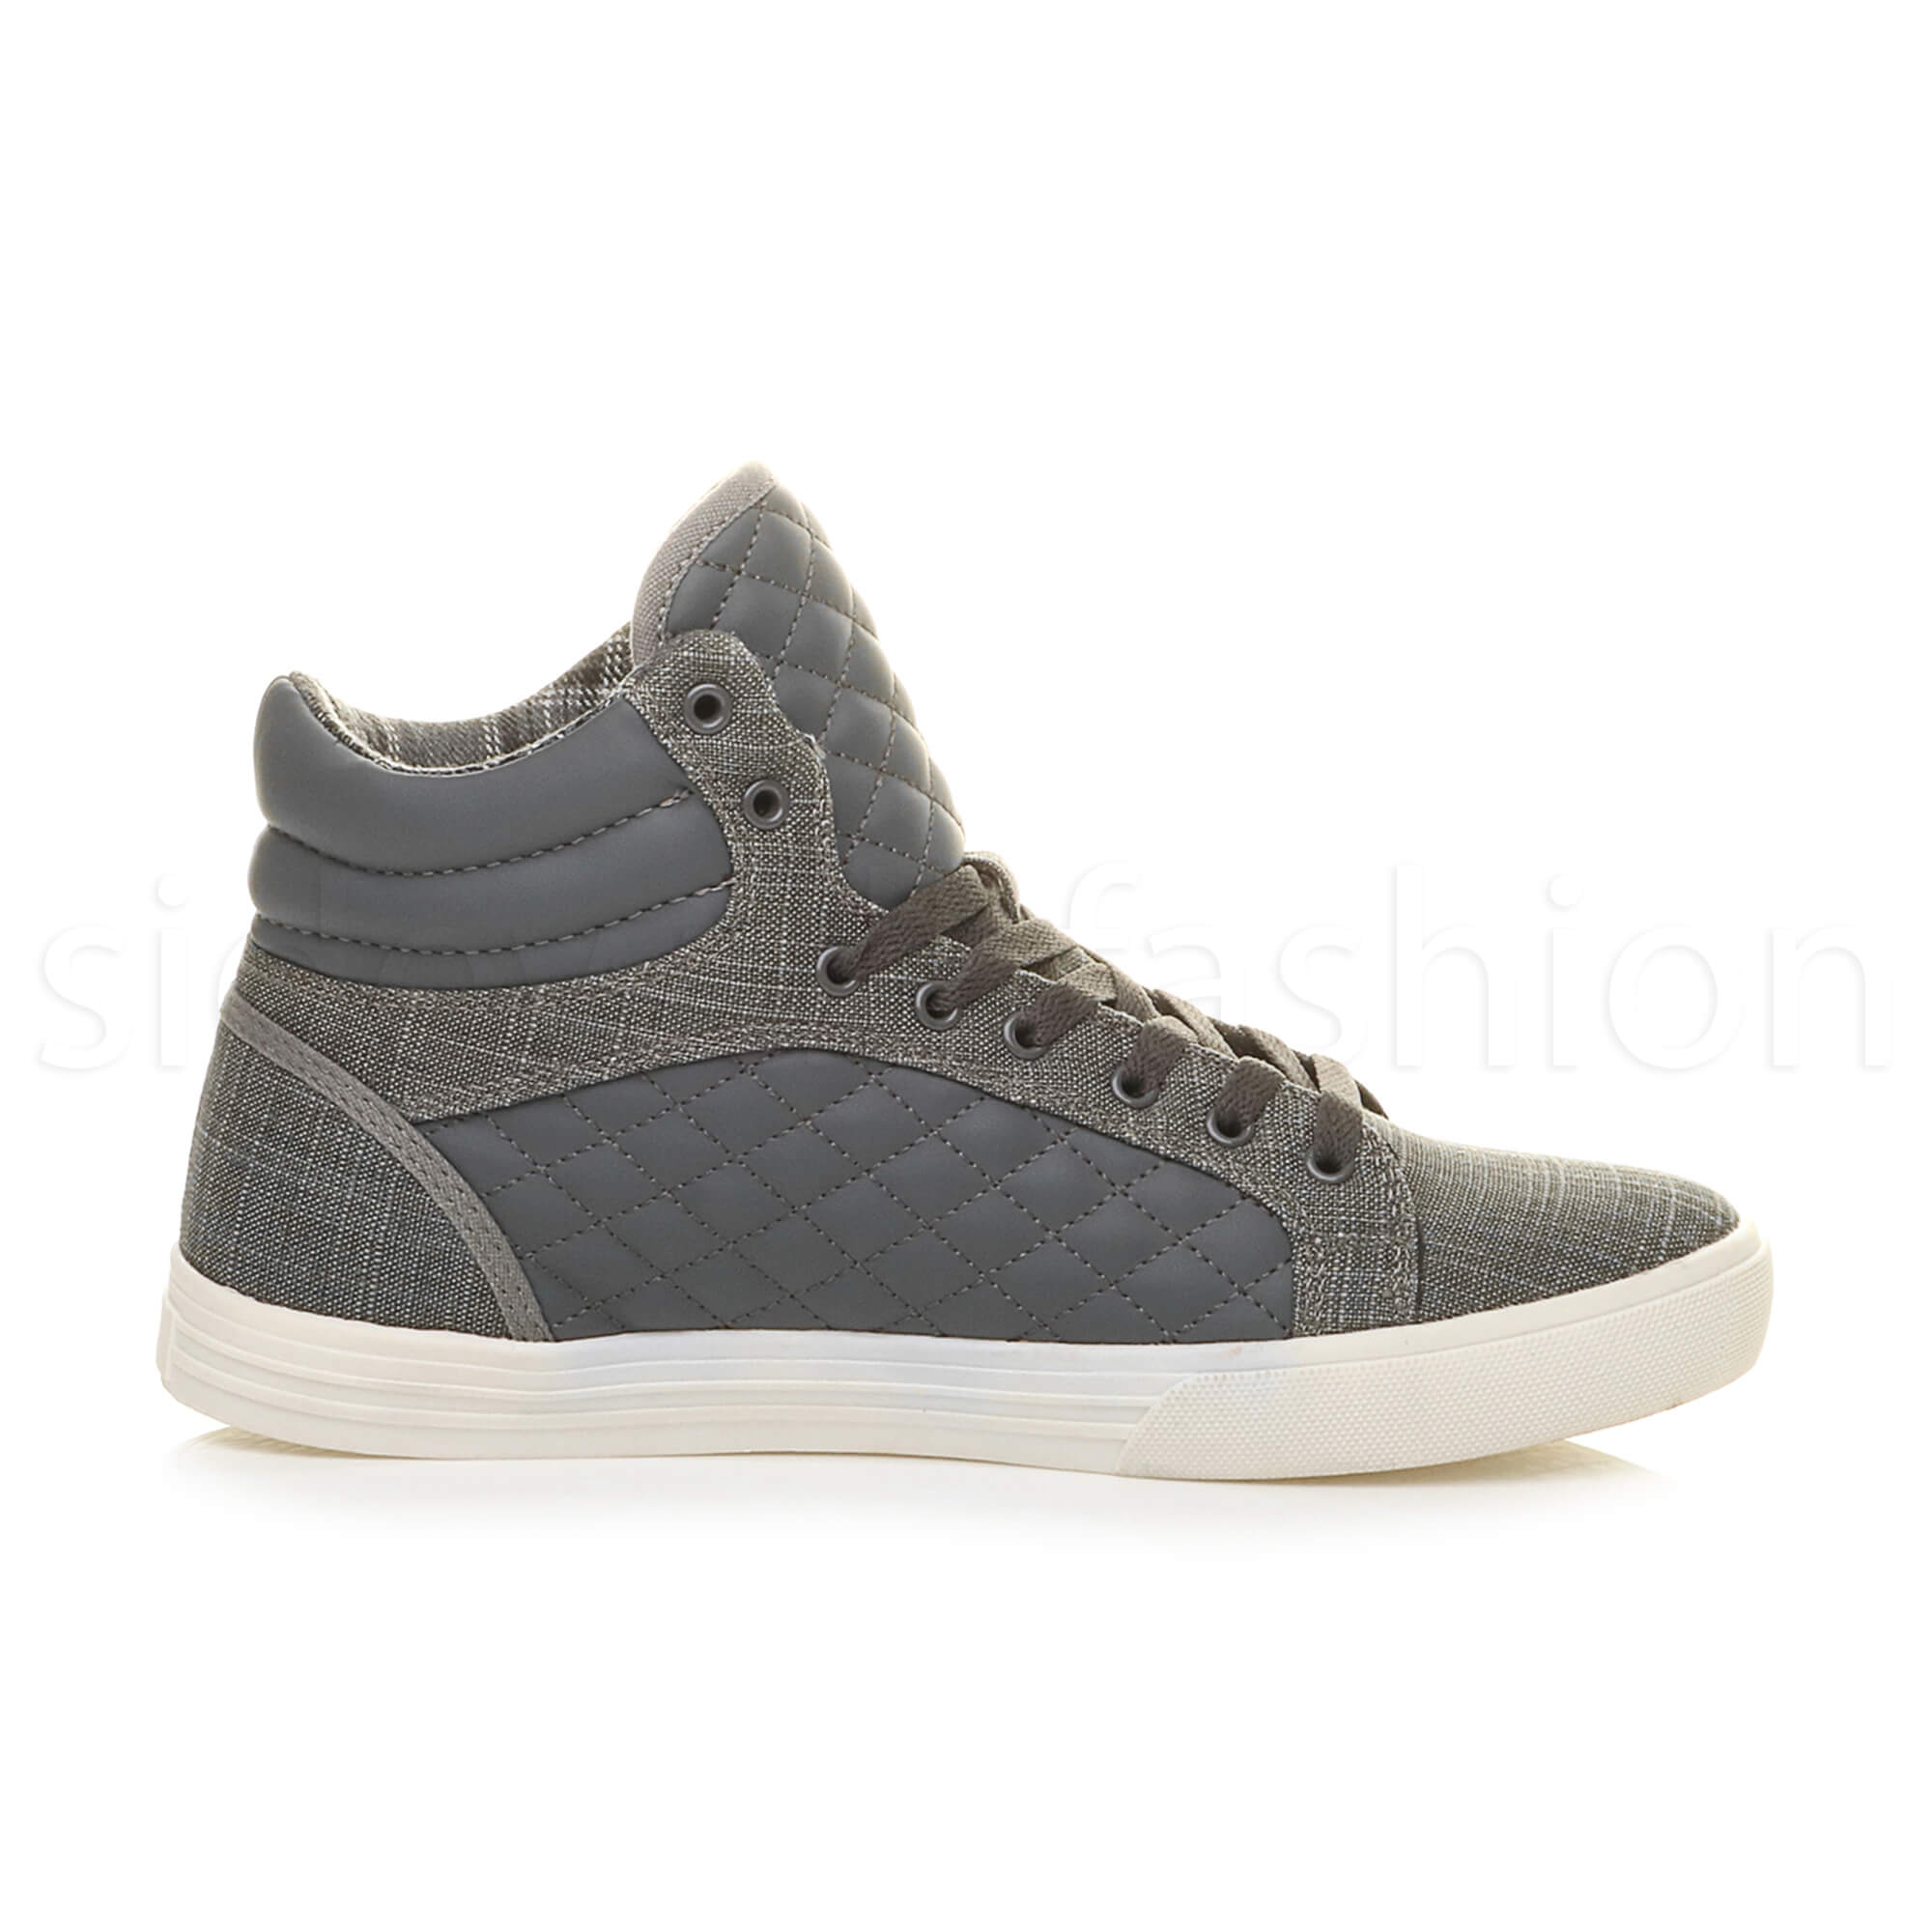 Mens-flat-lace-up-quilted-casual-hi-high-top-ankle-boots-trainers-sneakers-size thumbnail 11